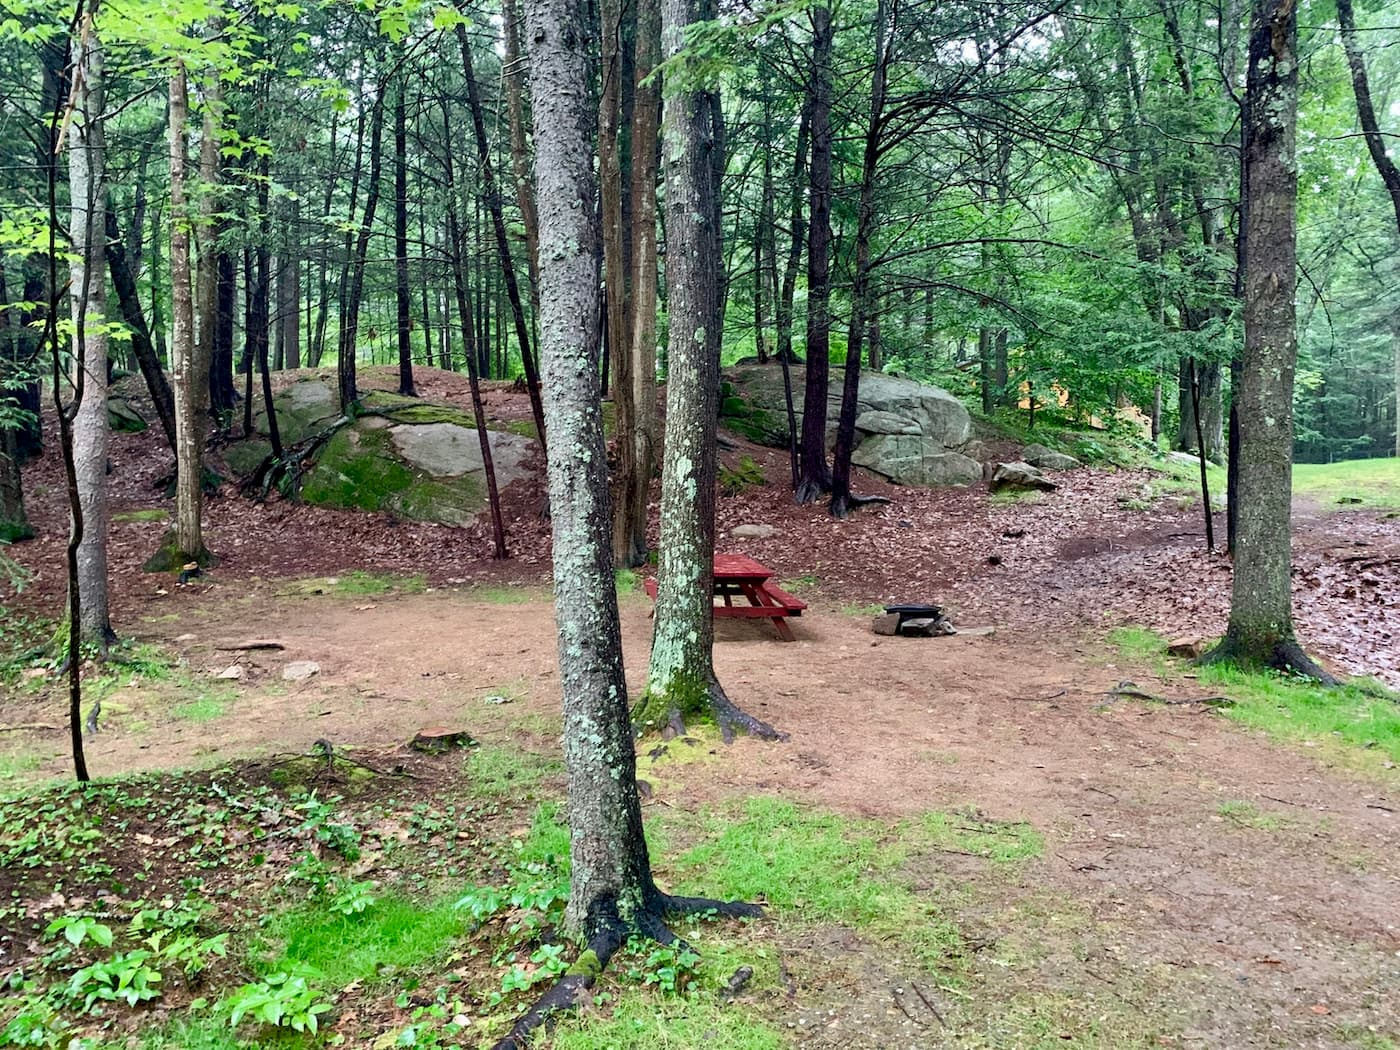 Picnic table in forested campsite.